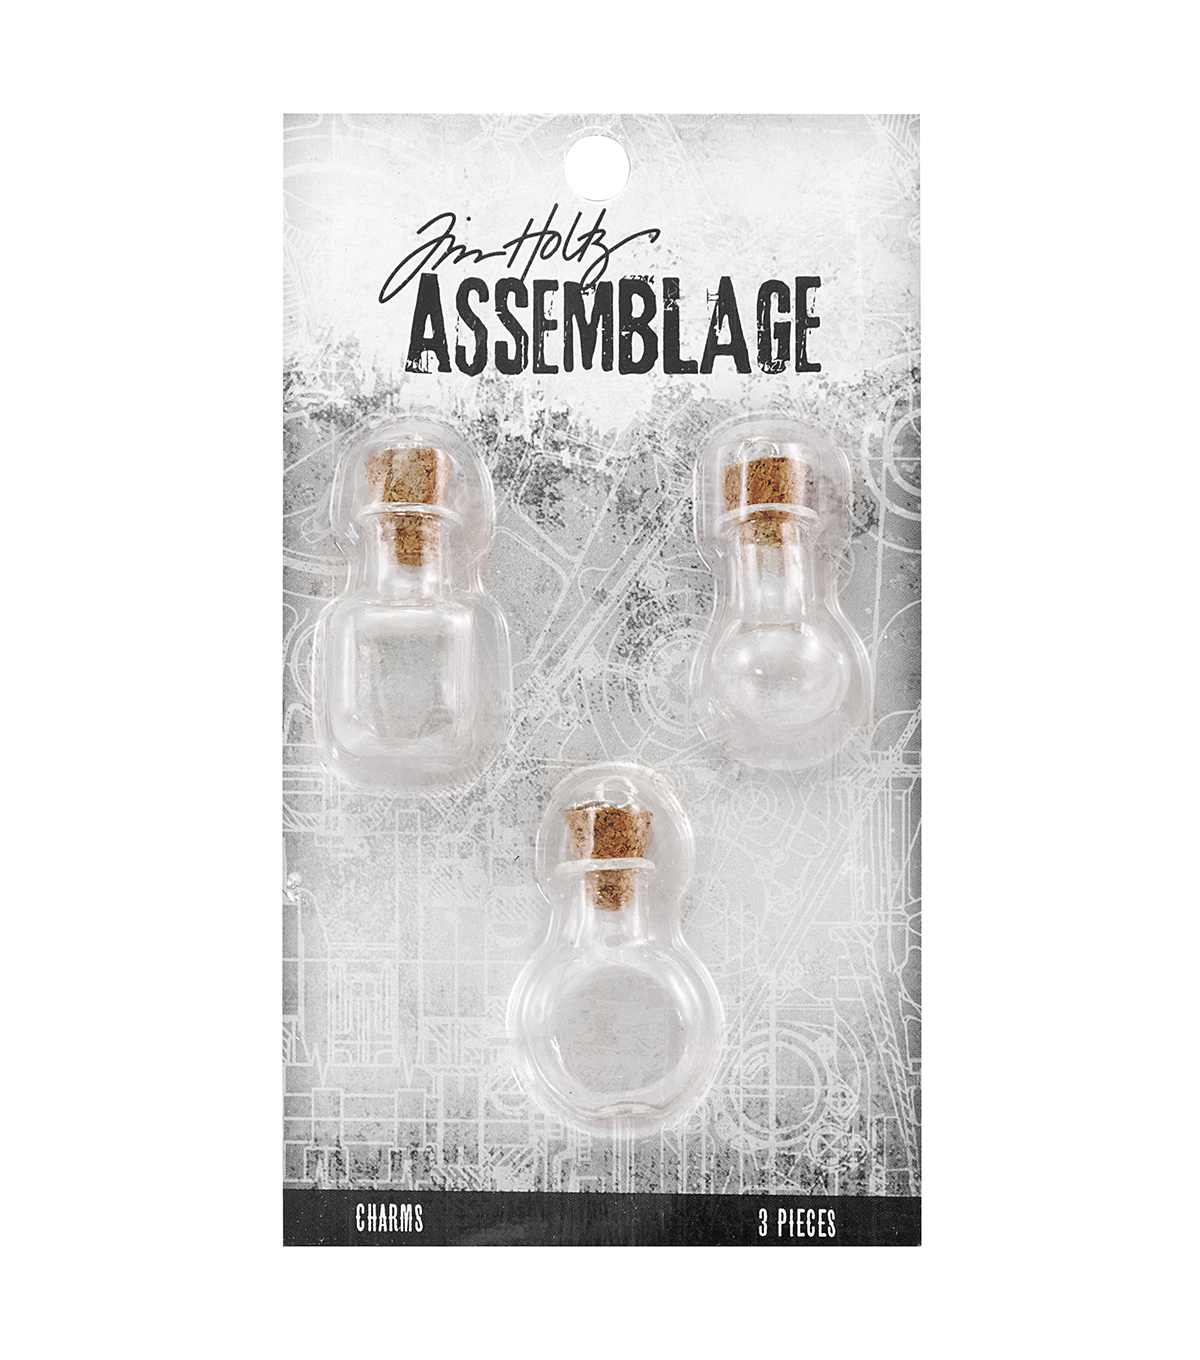 Tim Holtz Assemblage Pack of 3 Glass Vials Charms